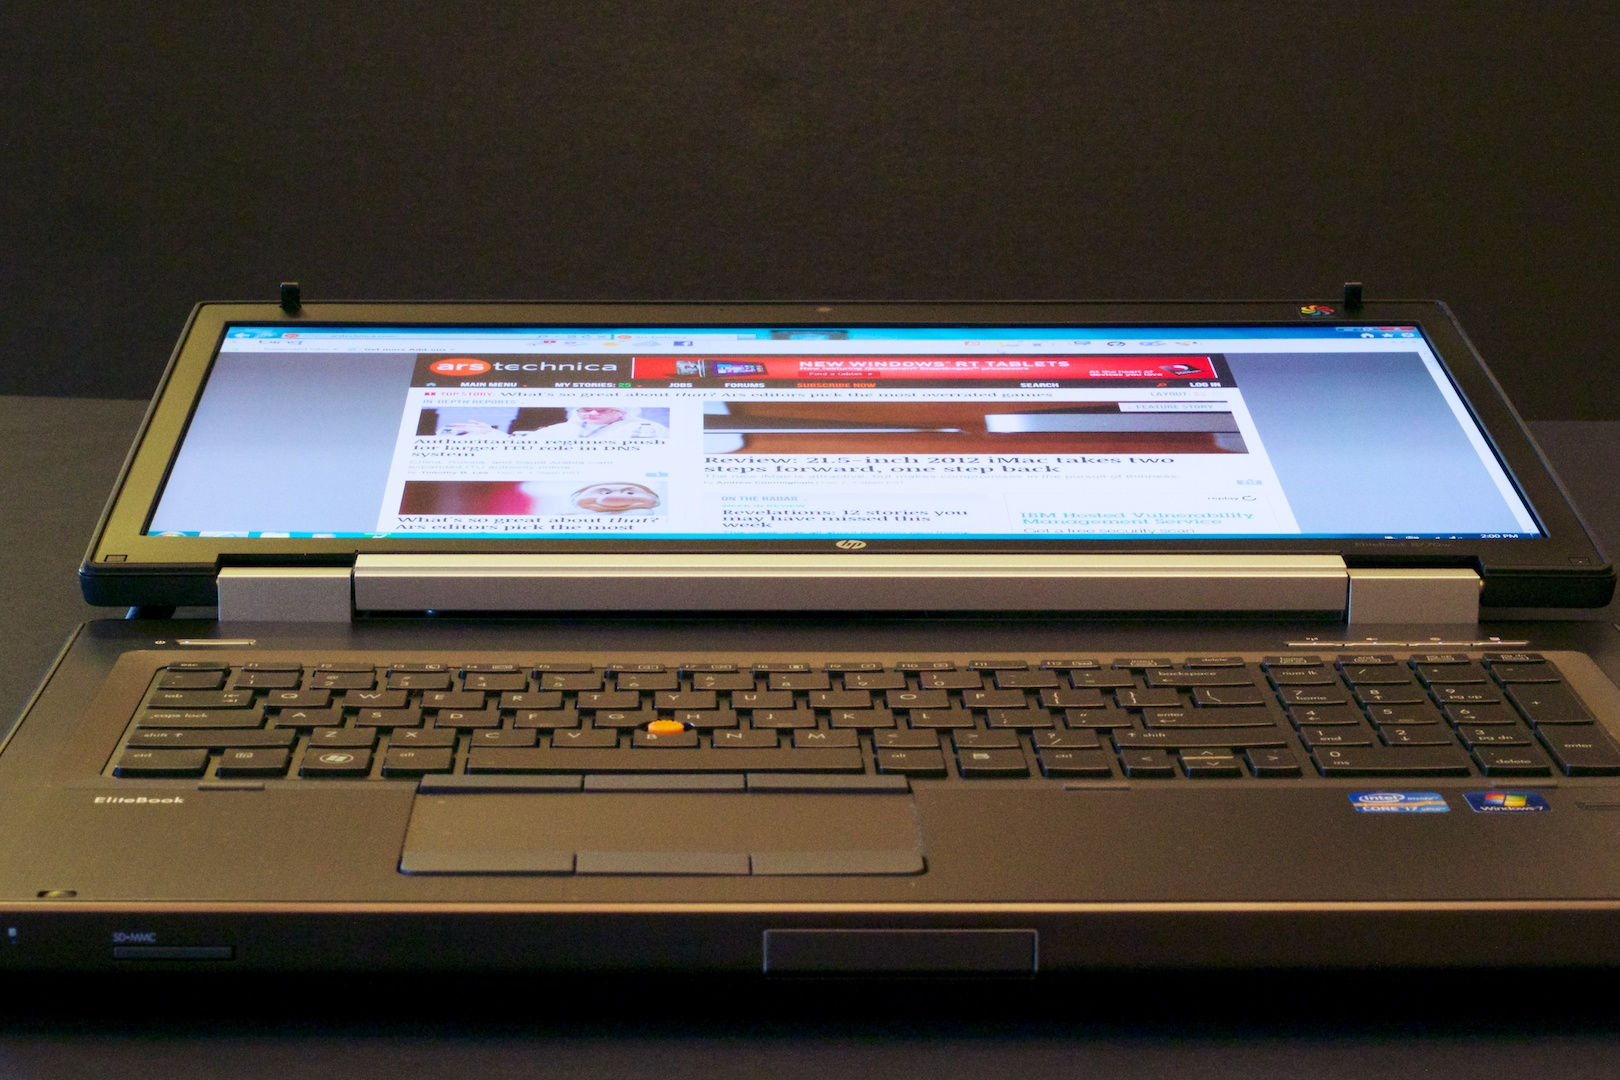 Hands-on with $6,400 of workstation-class laptop | Ars Technica